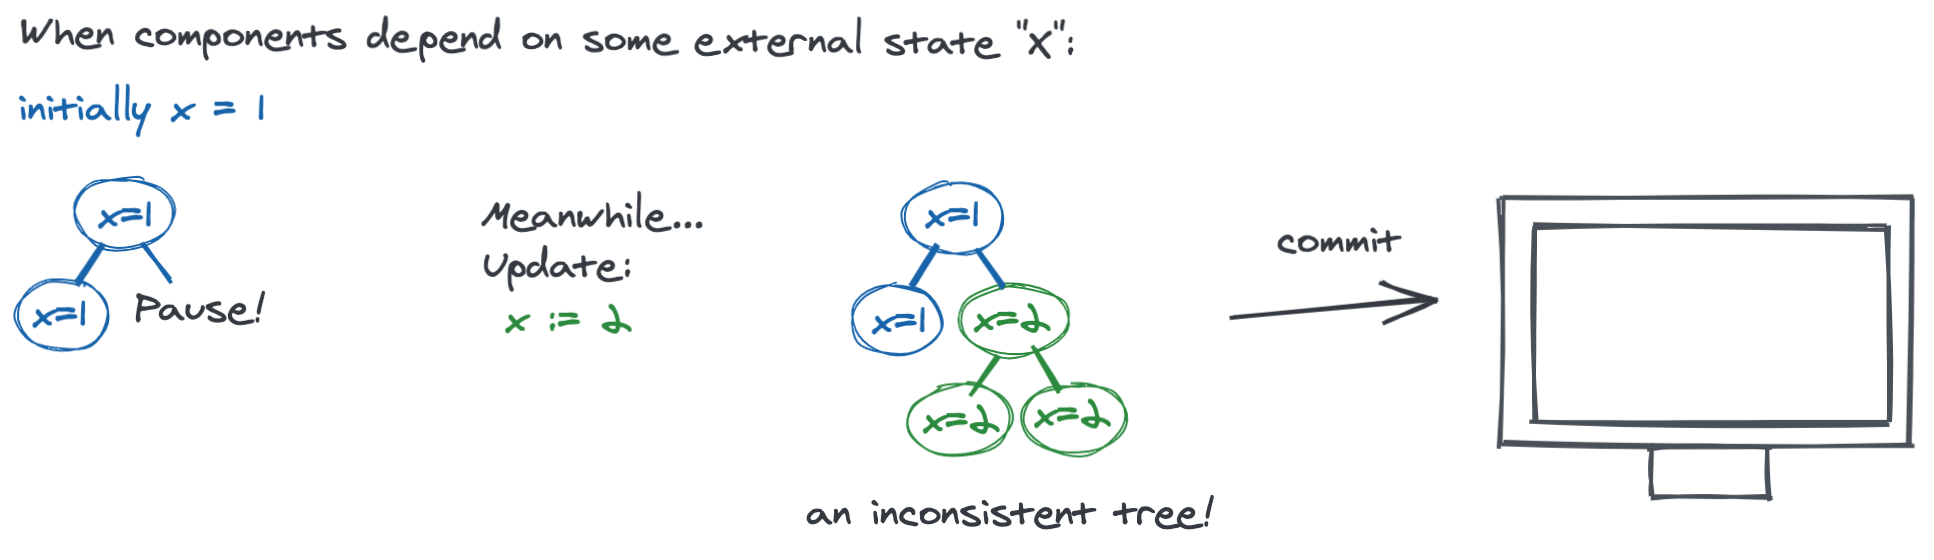 If components depend on some external state, and that state changes while rendering is paused, then components rendered before the pause will observe the old state, while components rendered after the pause will observe the new state.